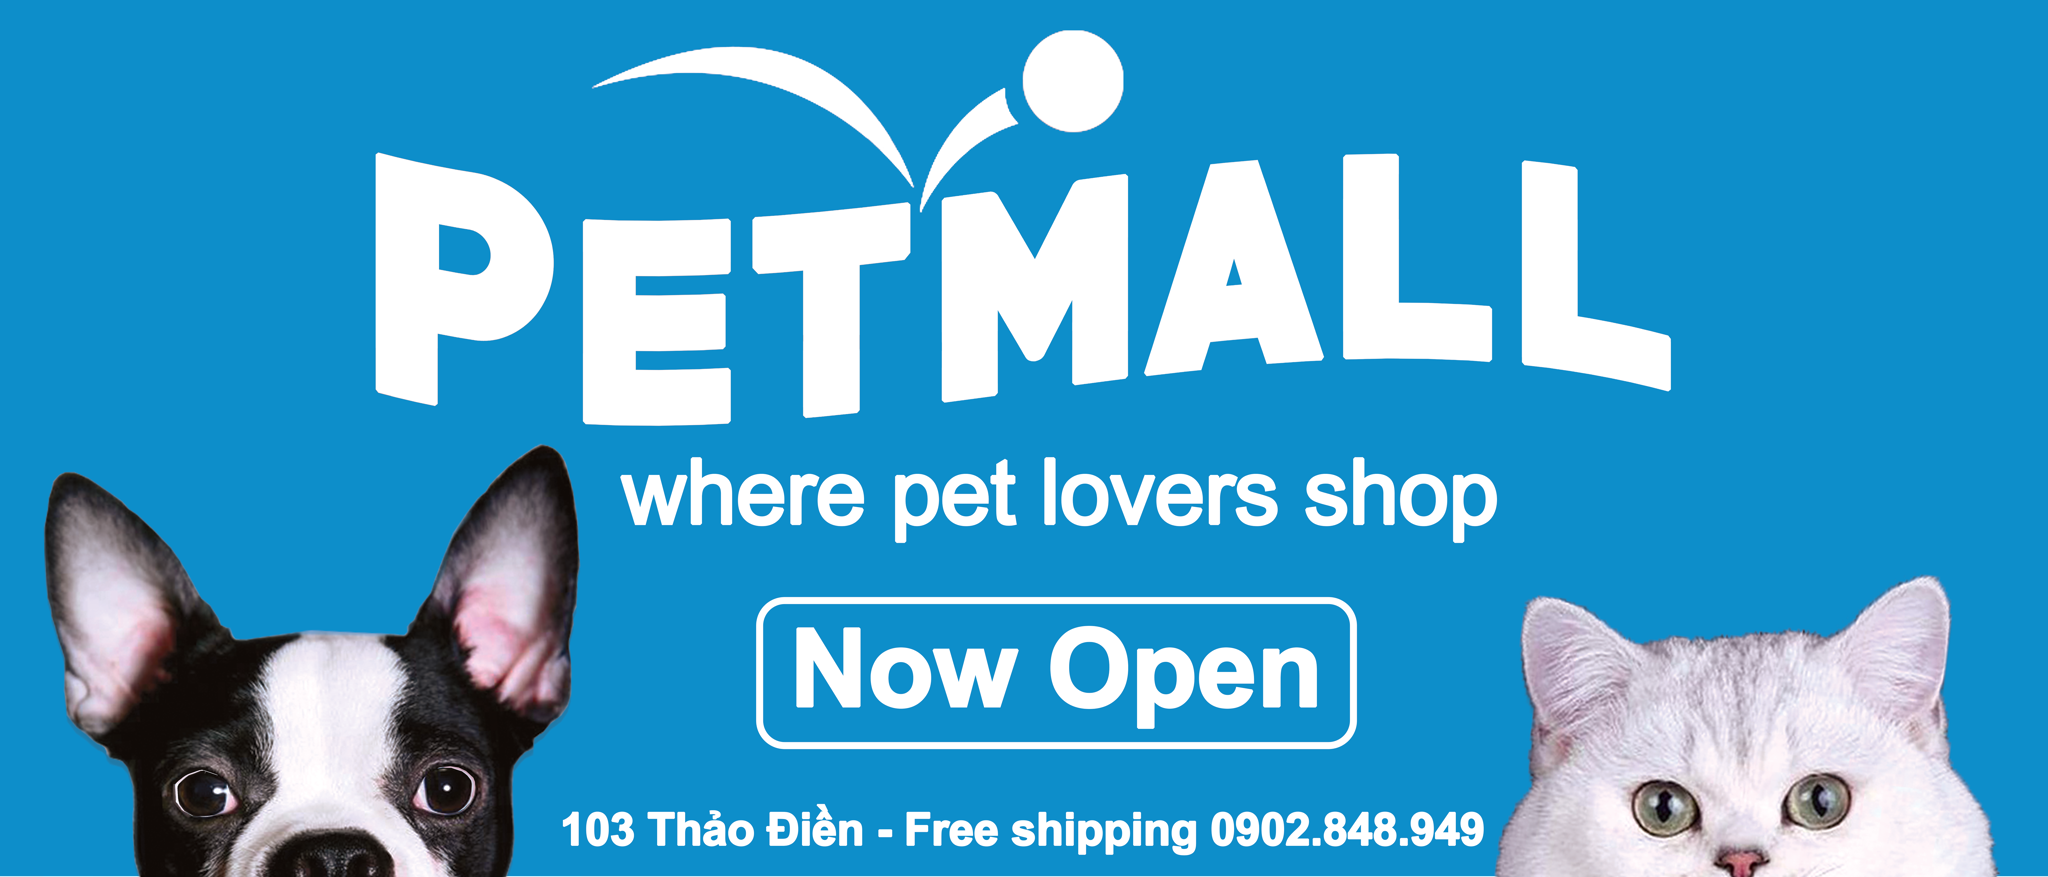 PETMALL.vn - Petmart Thảo Điền - Pet food, Product, Supplies at Low Prices - Free Shipping PETMALL THẢO ĐIỀN